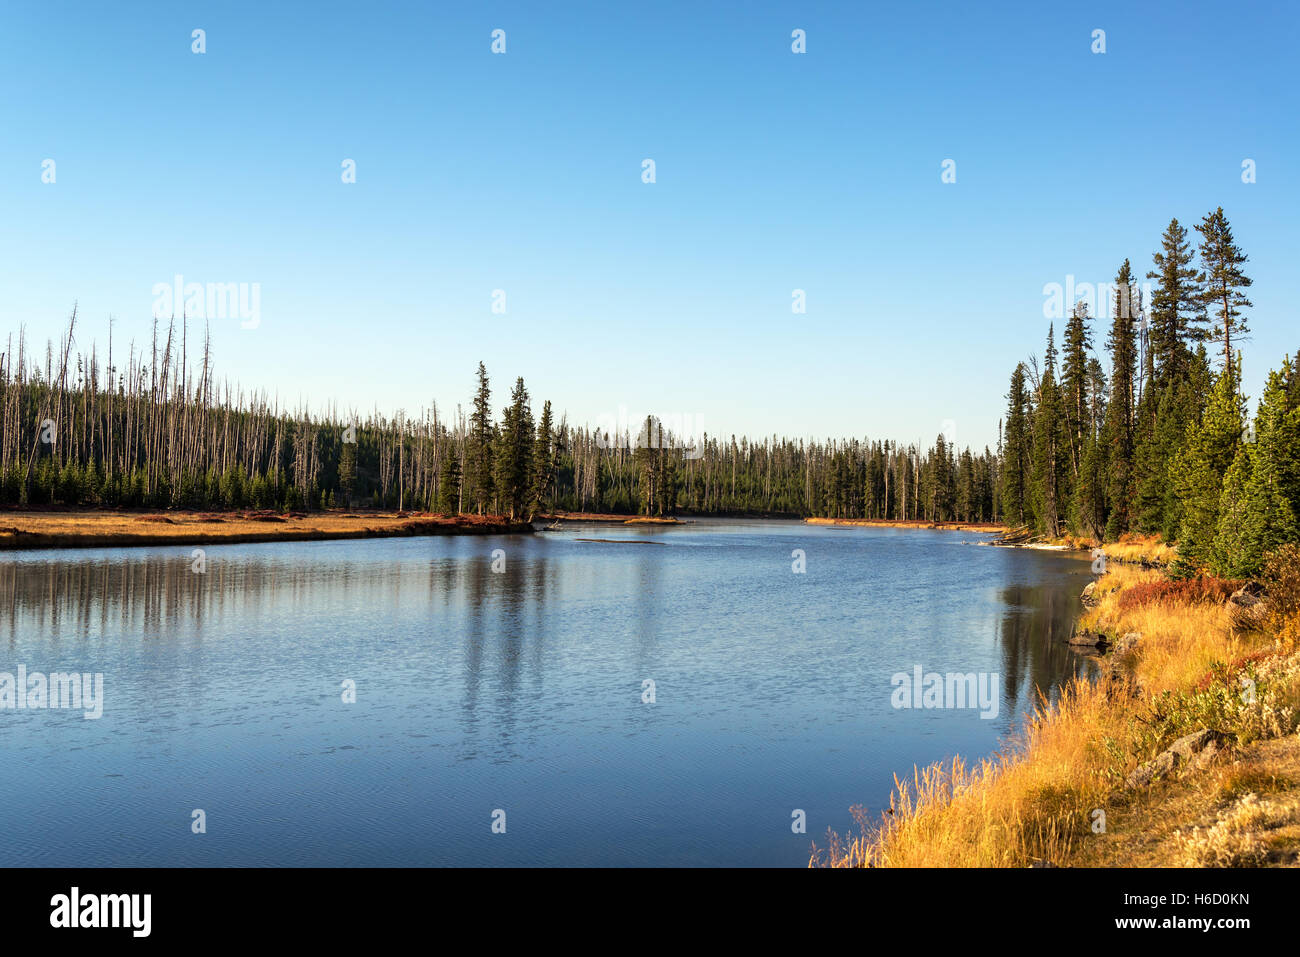 Landscape view of the Snake River in Yellowstone National Park - Stock Image